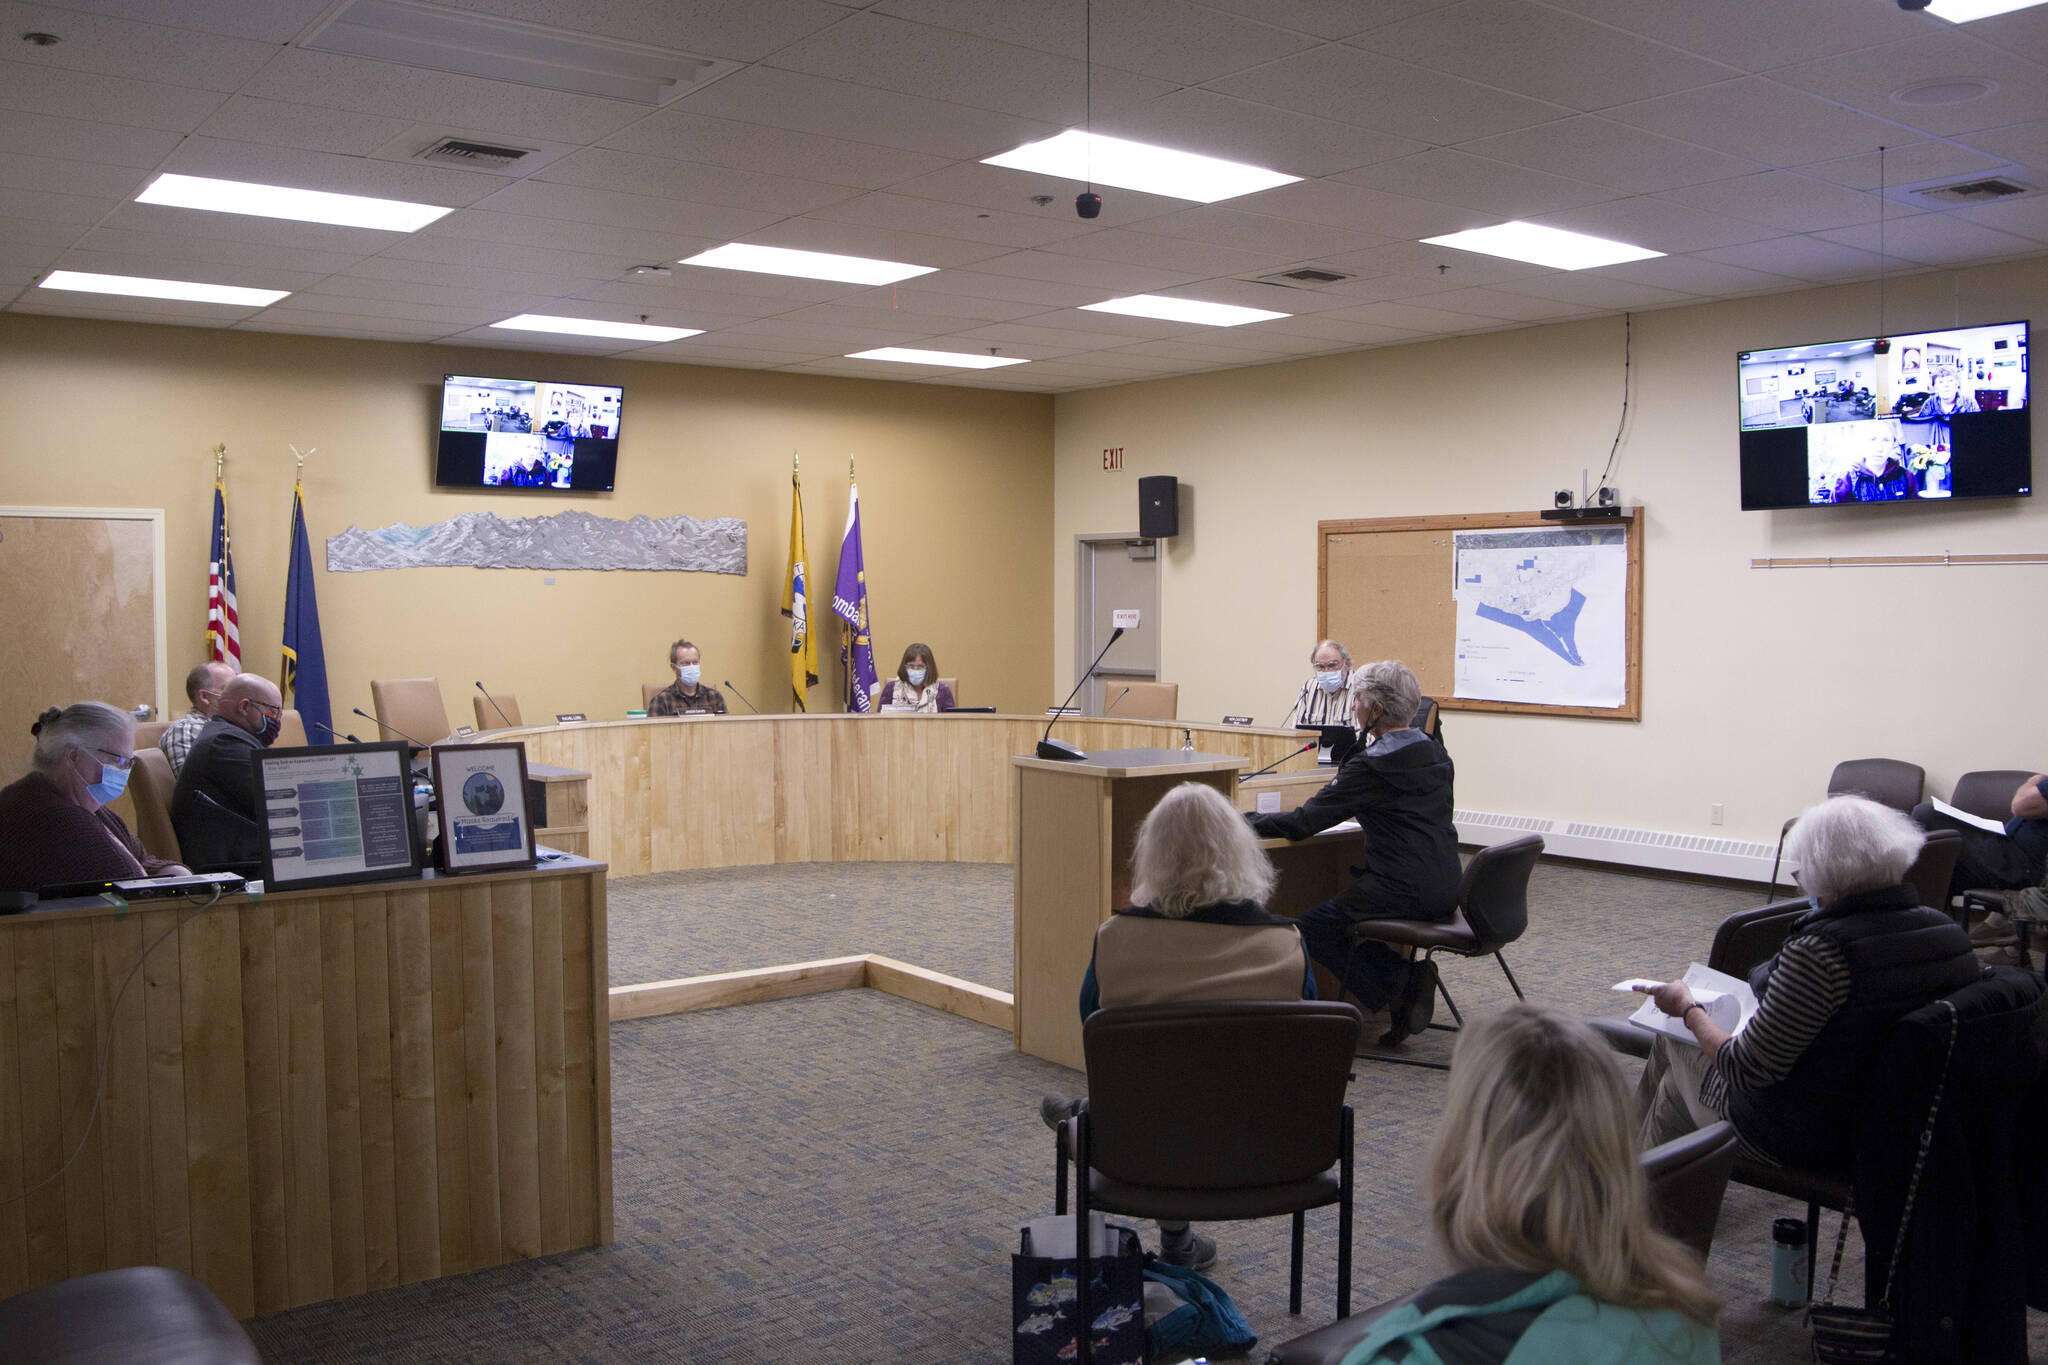 Janie Leask, a Homer resident, spoke in support of the new multi-use community center during Monday night's city council meeting, stating the need for community recreation is vital.